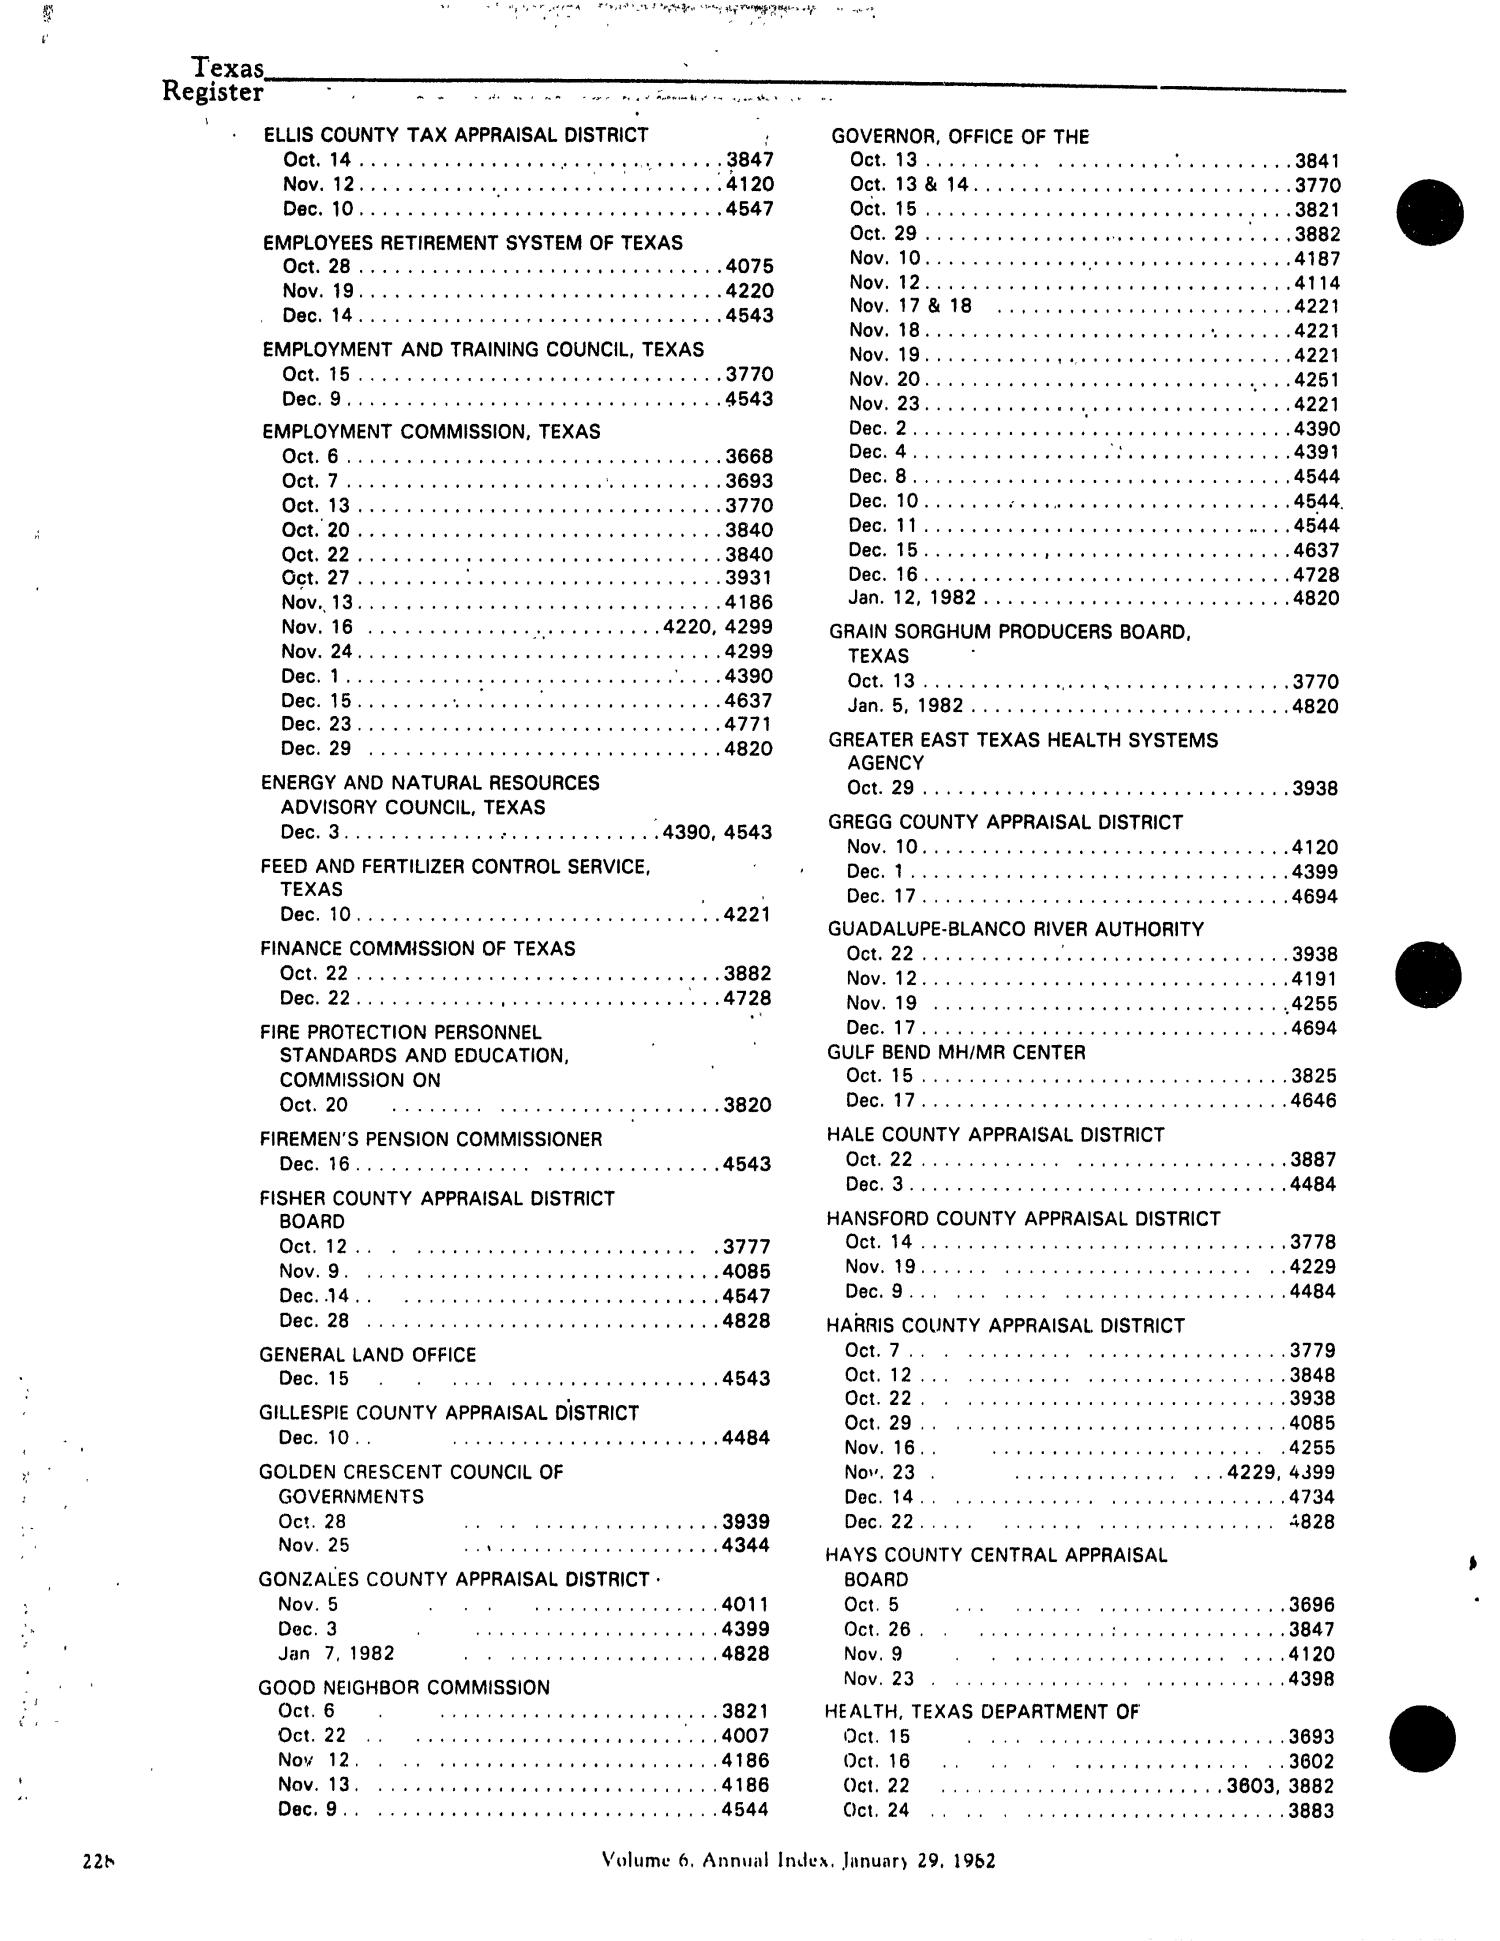 Texas Register, Volume 6, Annual Index, Pages 137-235, January 29, 1981                                                                                                      228